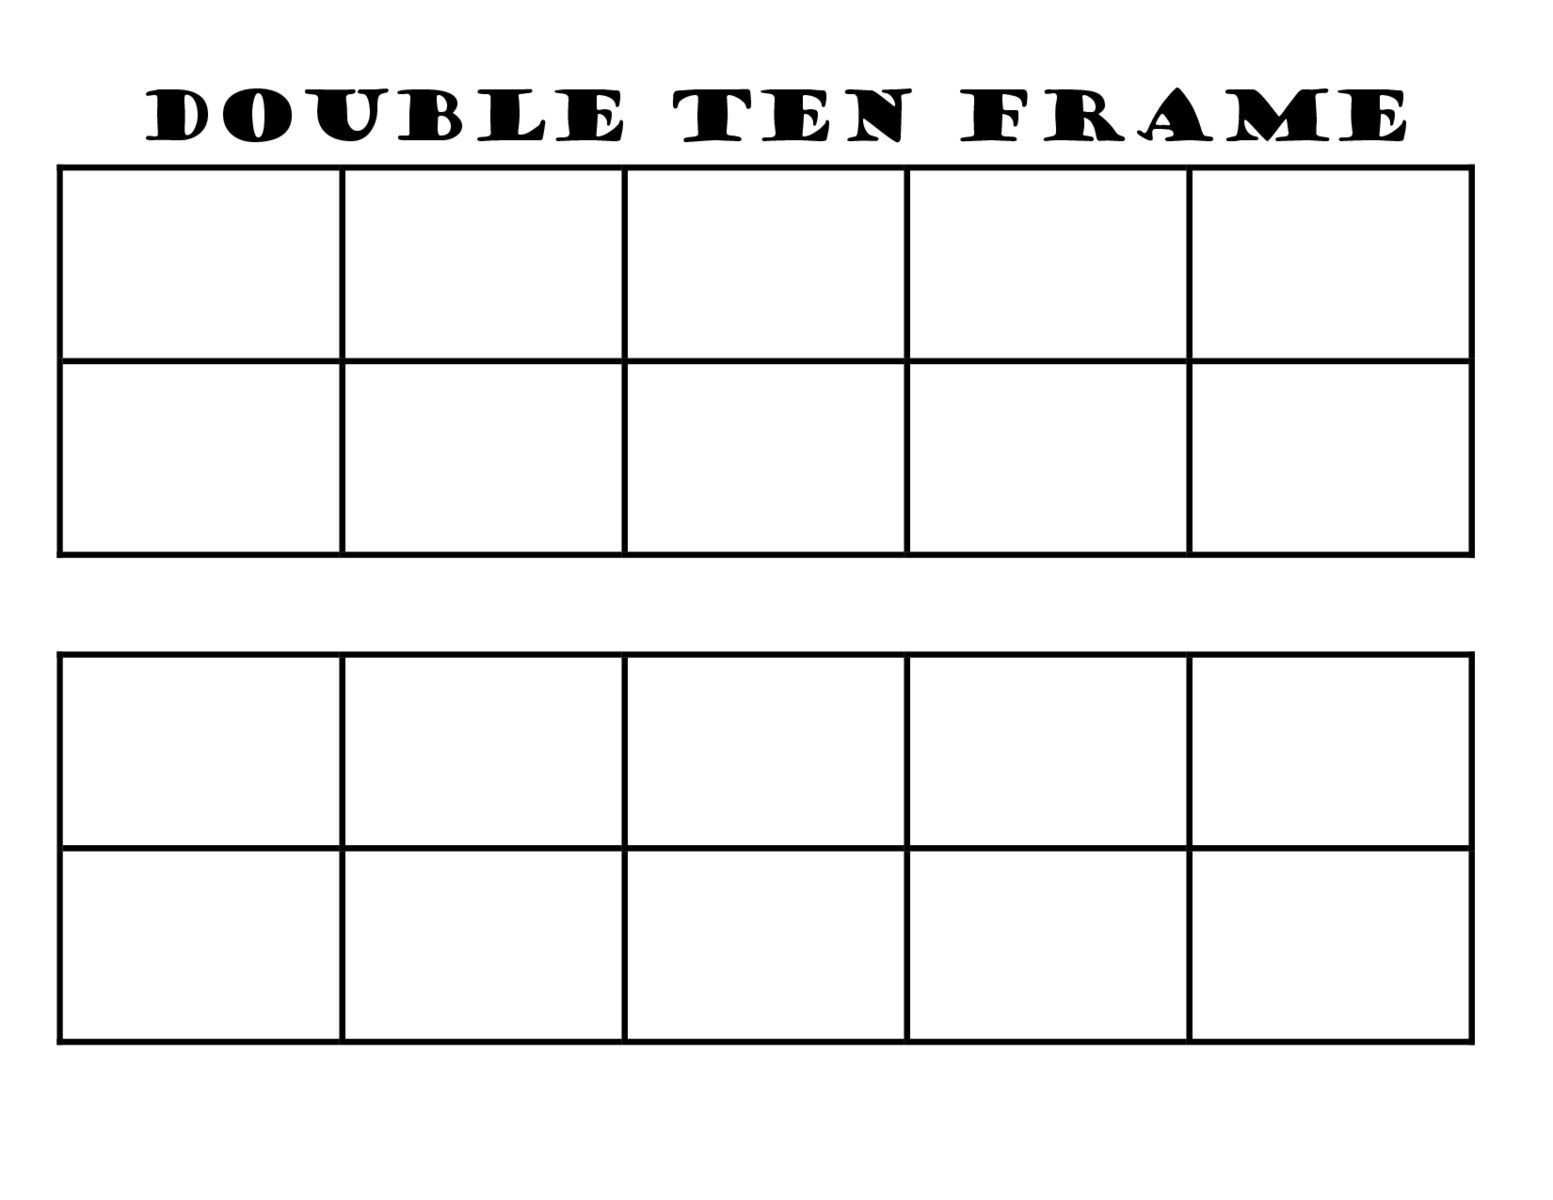 1 Choose A Number Between 10 And 20 Draw That Number Of Counters On The Double Ten Frame 2